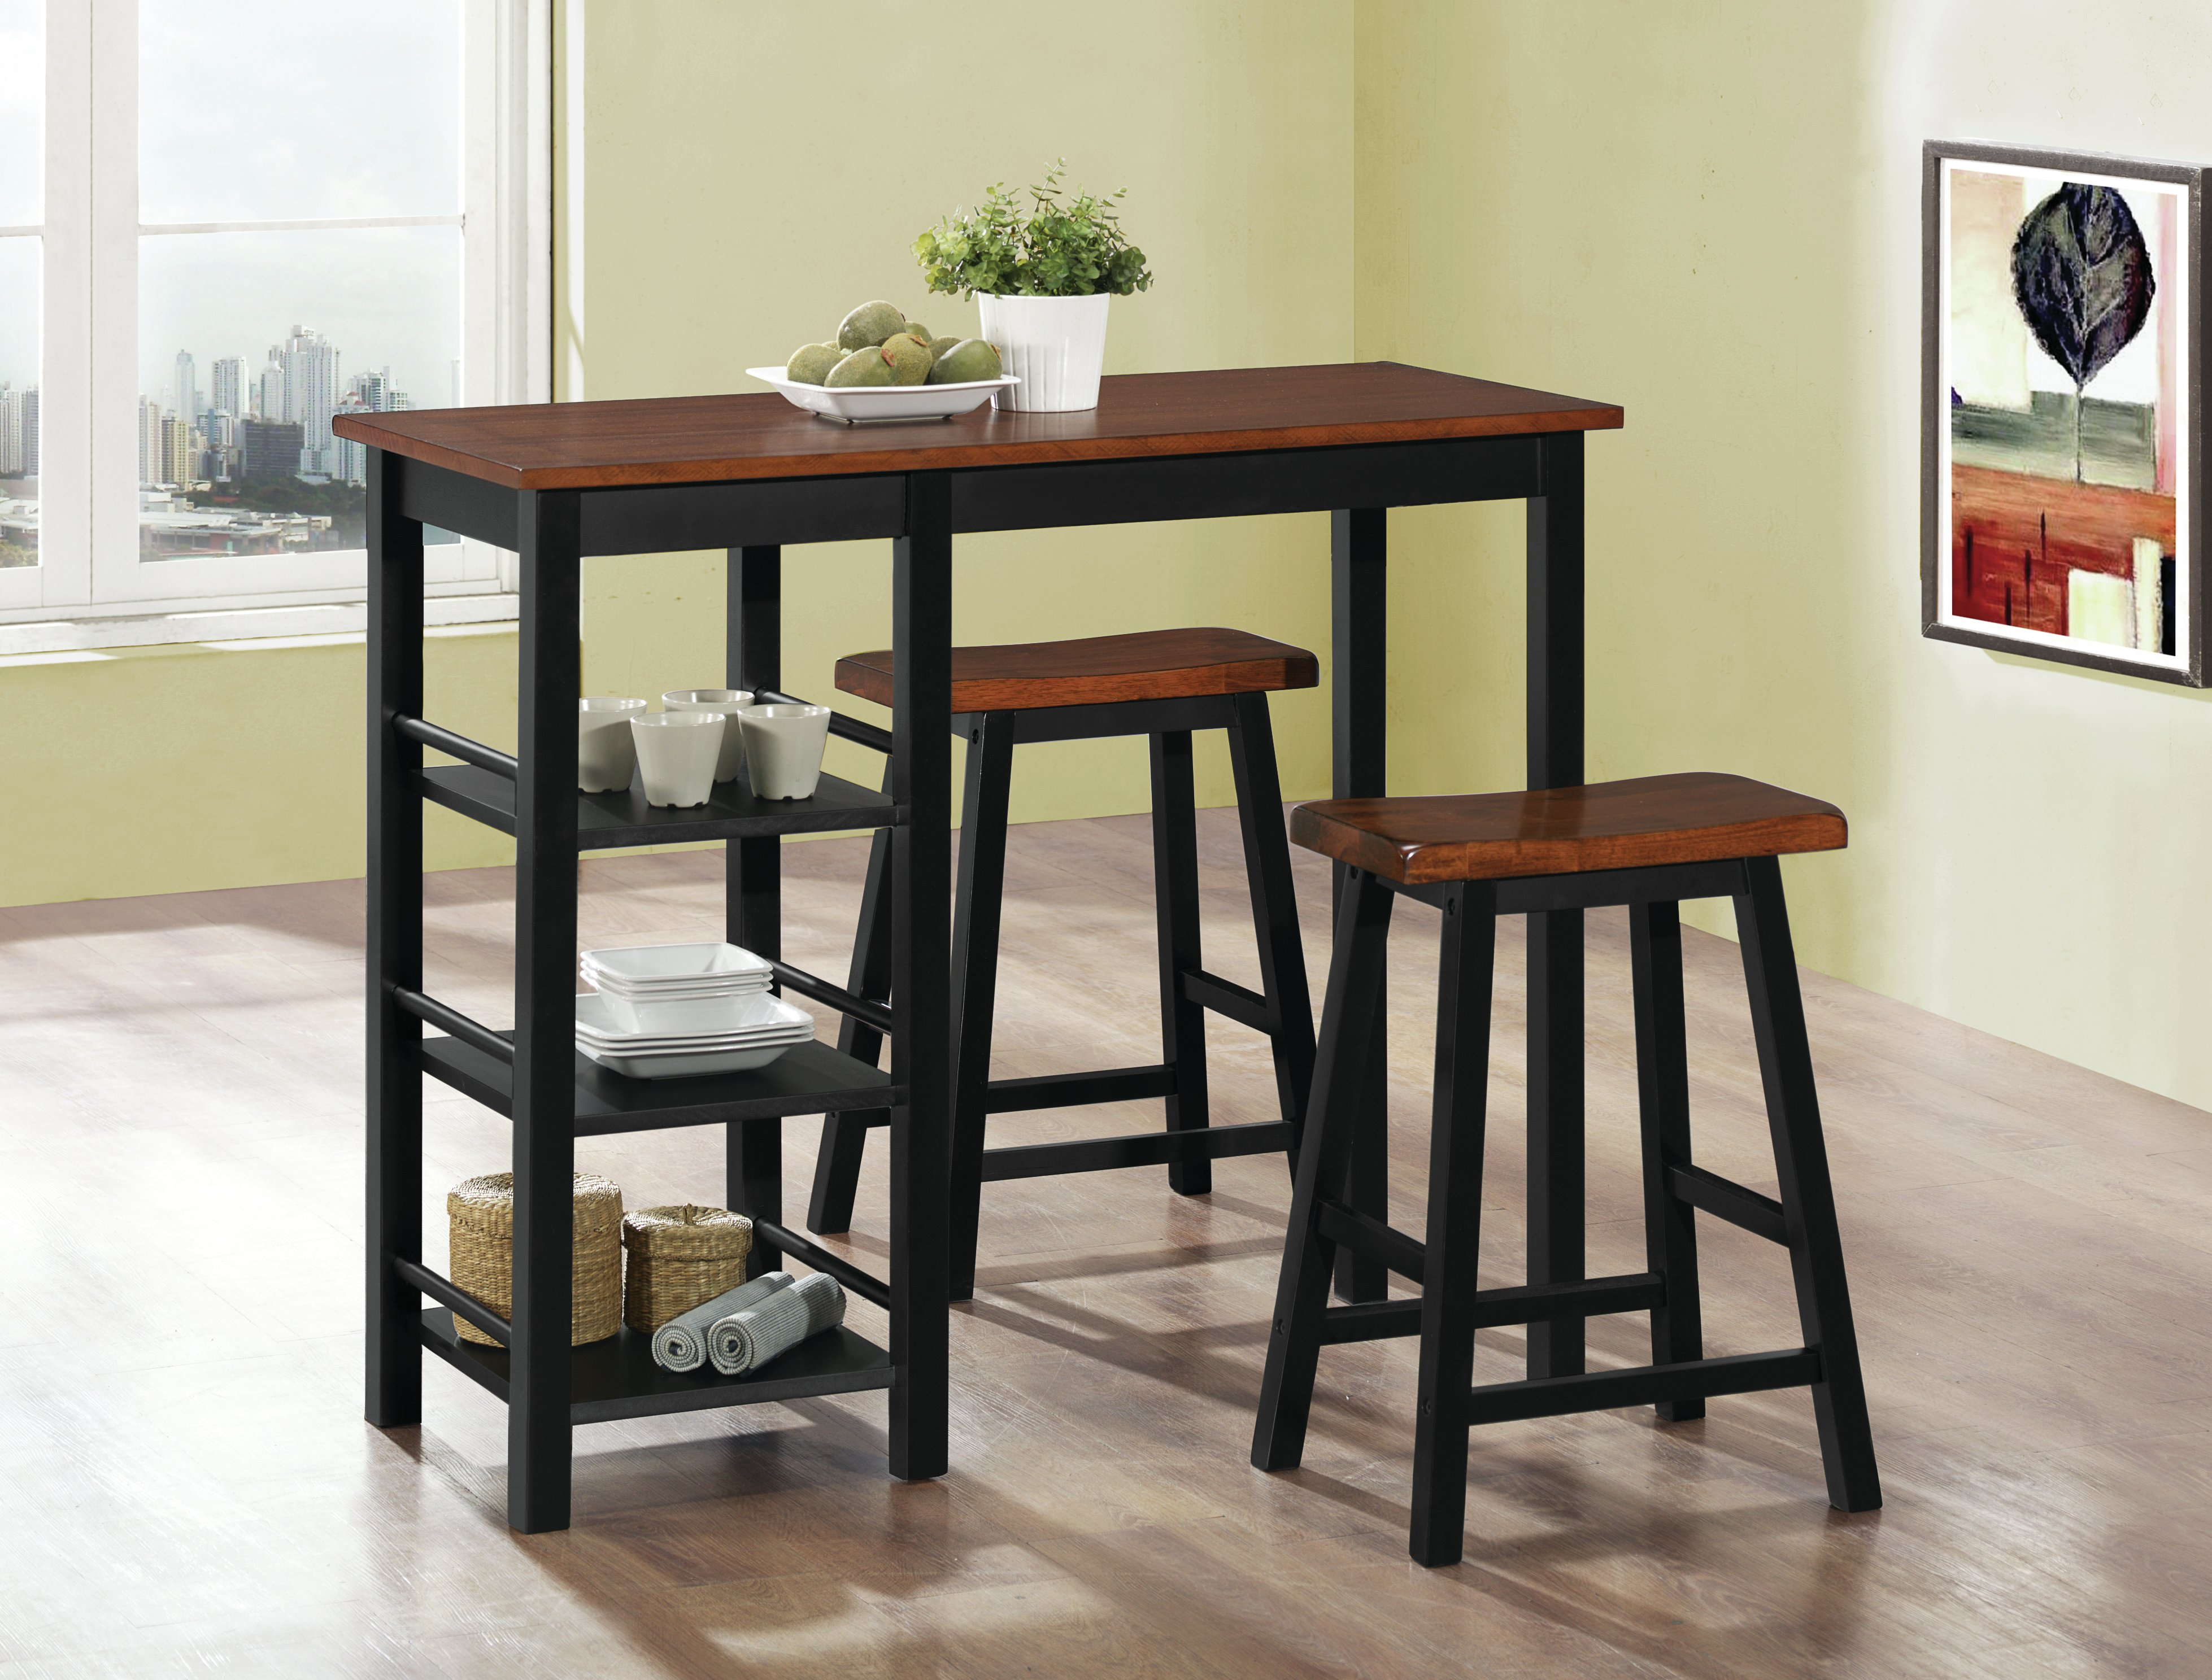 Berrios 3 Piece Counter Height Dining Set With Regard To Best And Newest Berrios 3 Piece Counter Height Dining Sets (View 2 of 20)